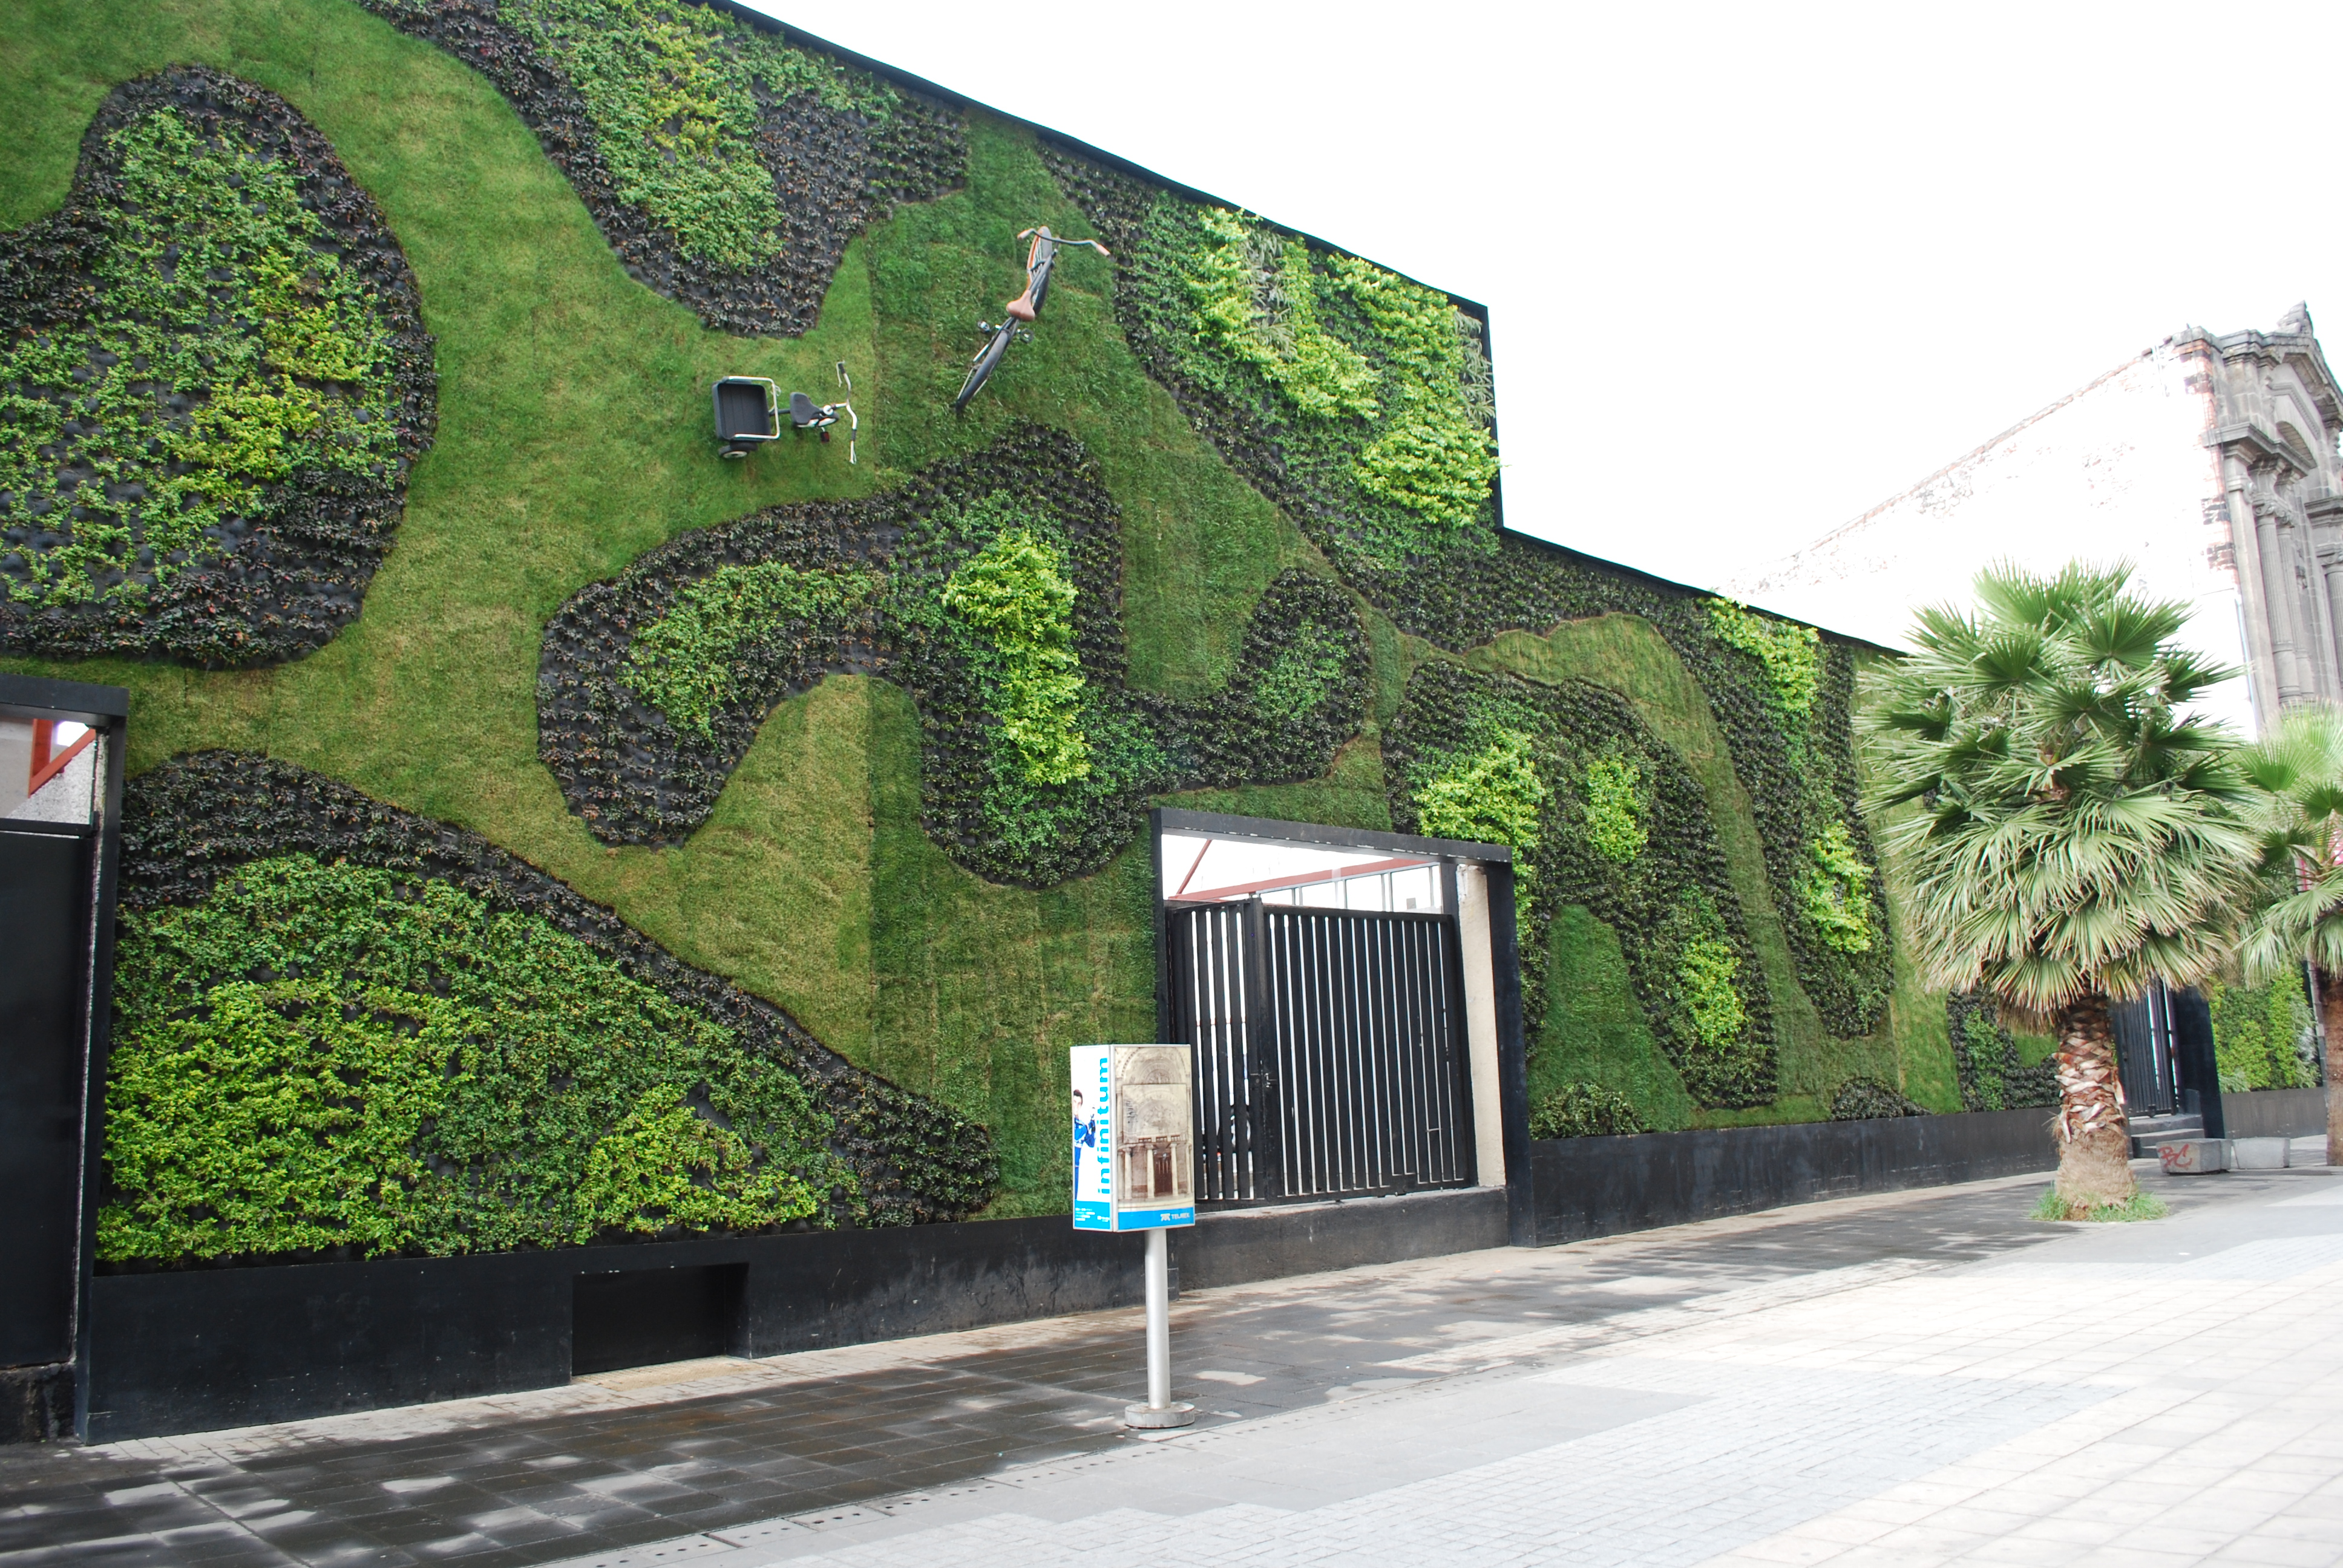 Green Wall | Great ParksGreat Parks